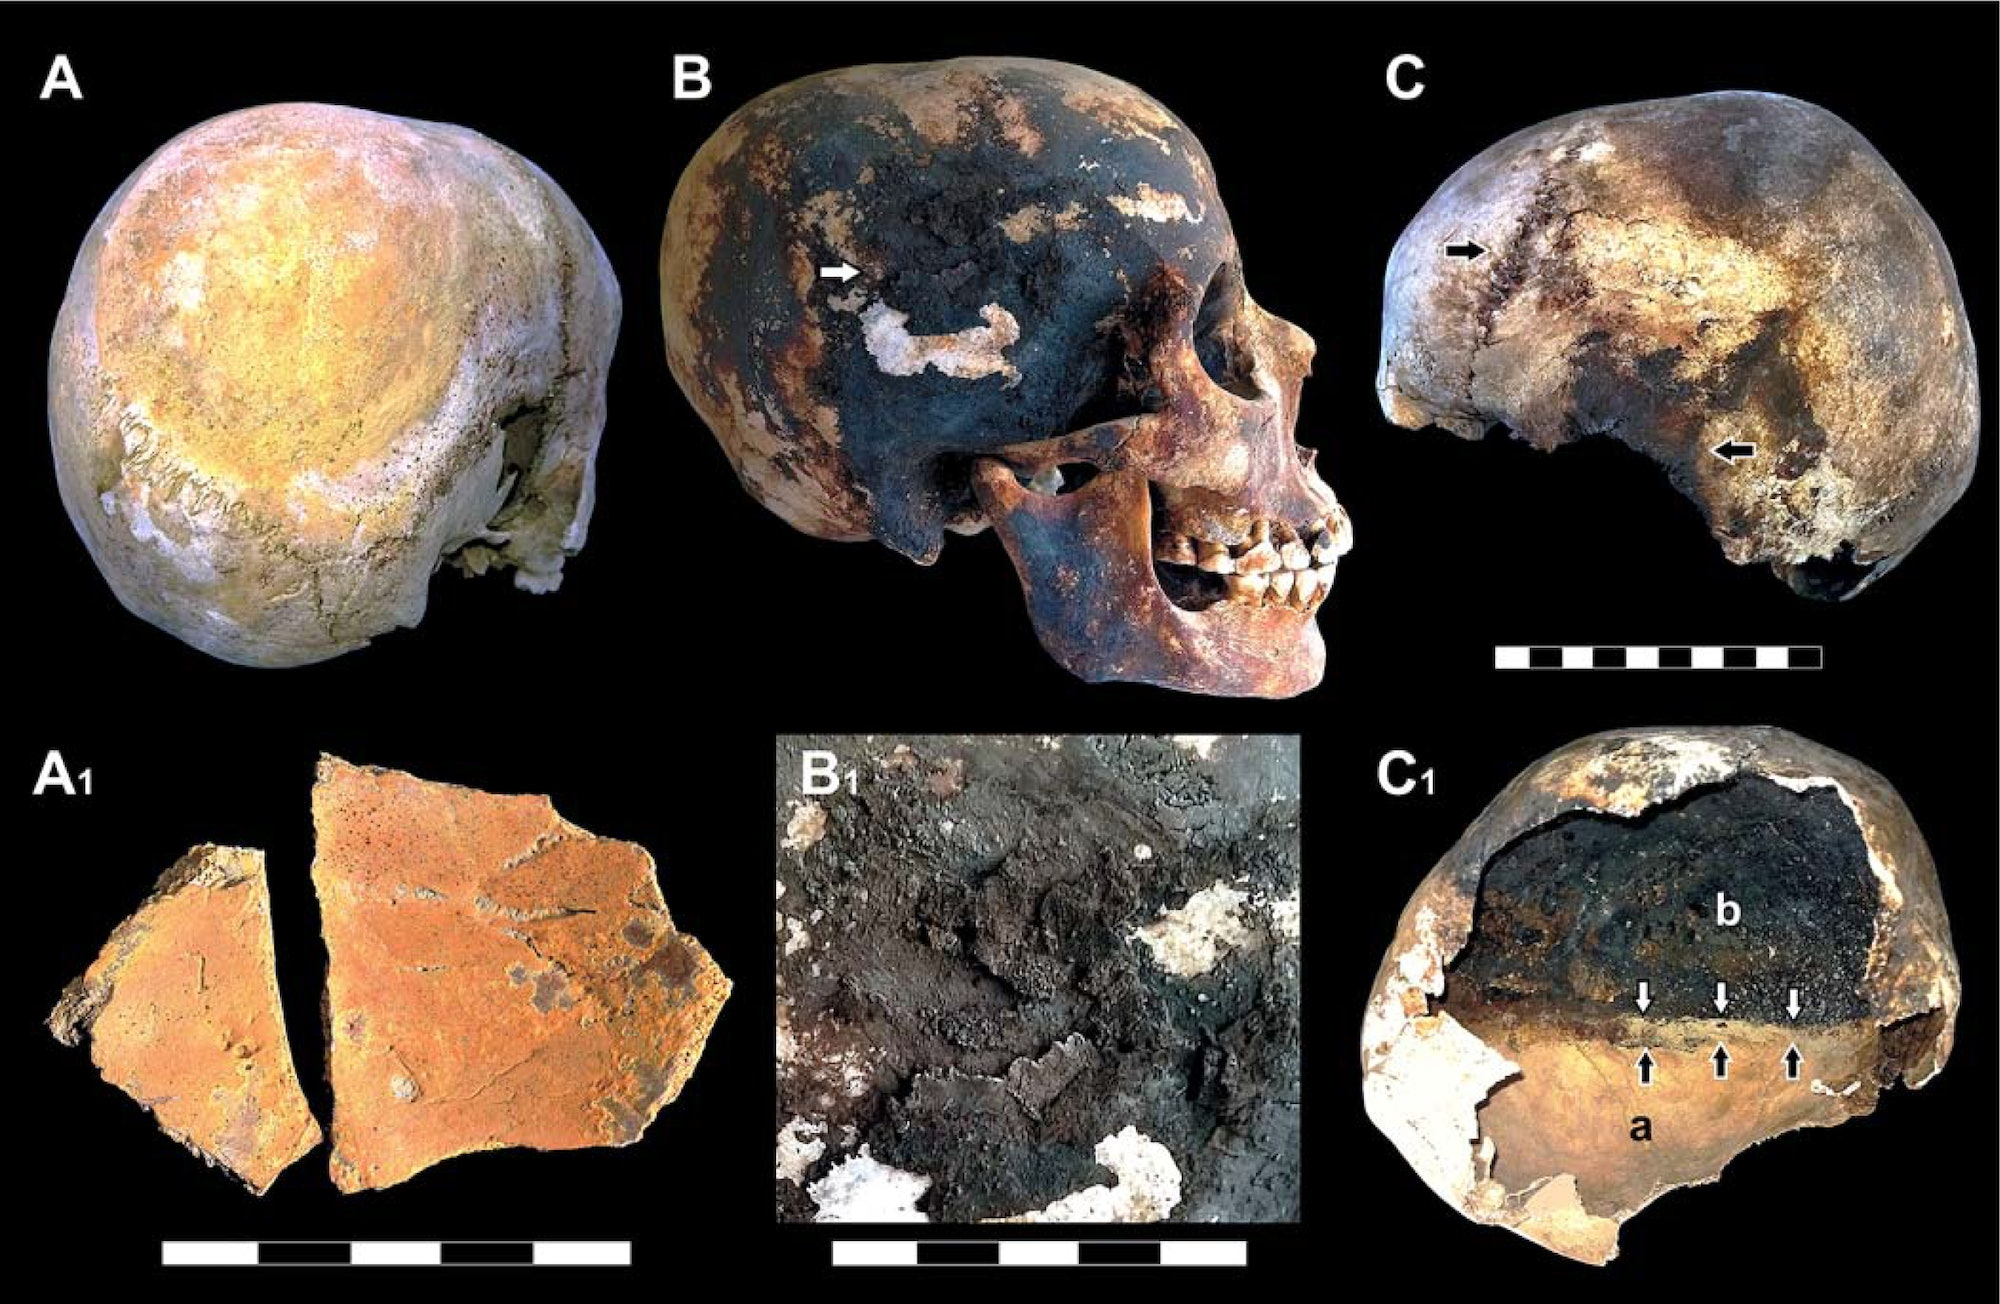 Dark stains and char marks tell researchers that Vesuvius' victims' brains likely vaporized in their skulls under the extreme heat.